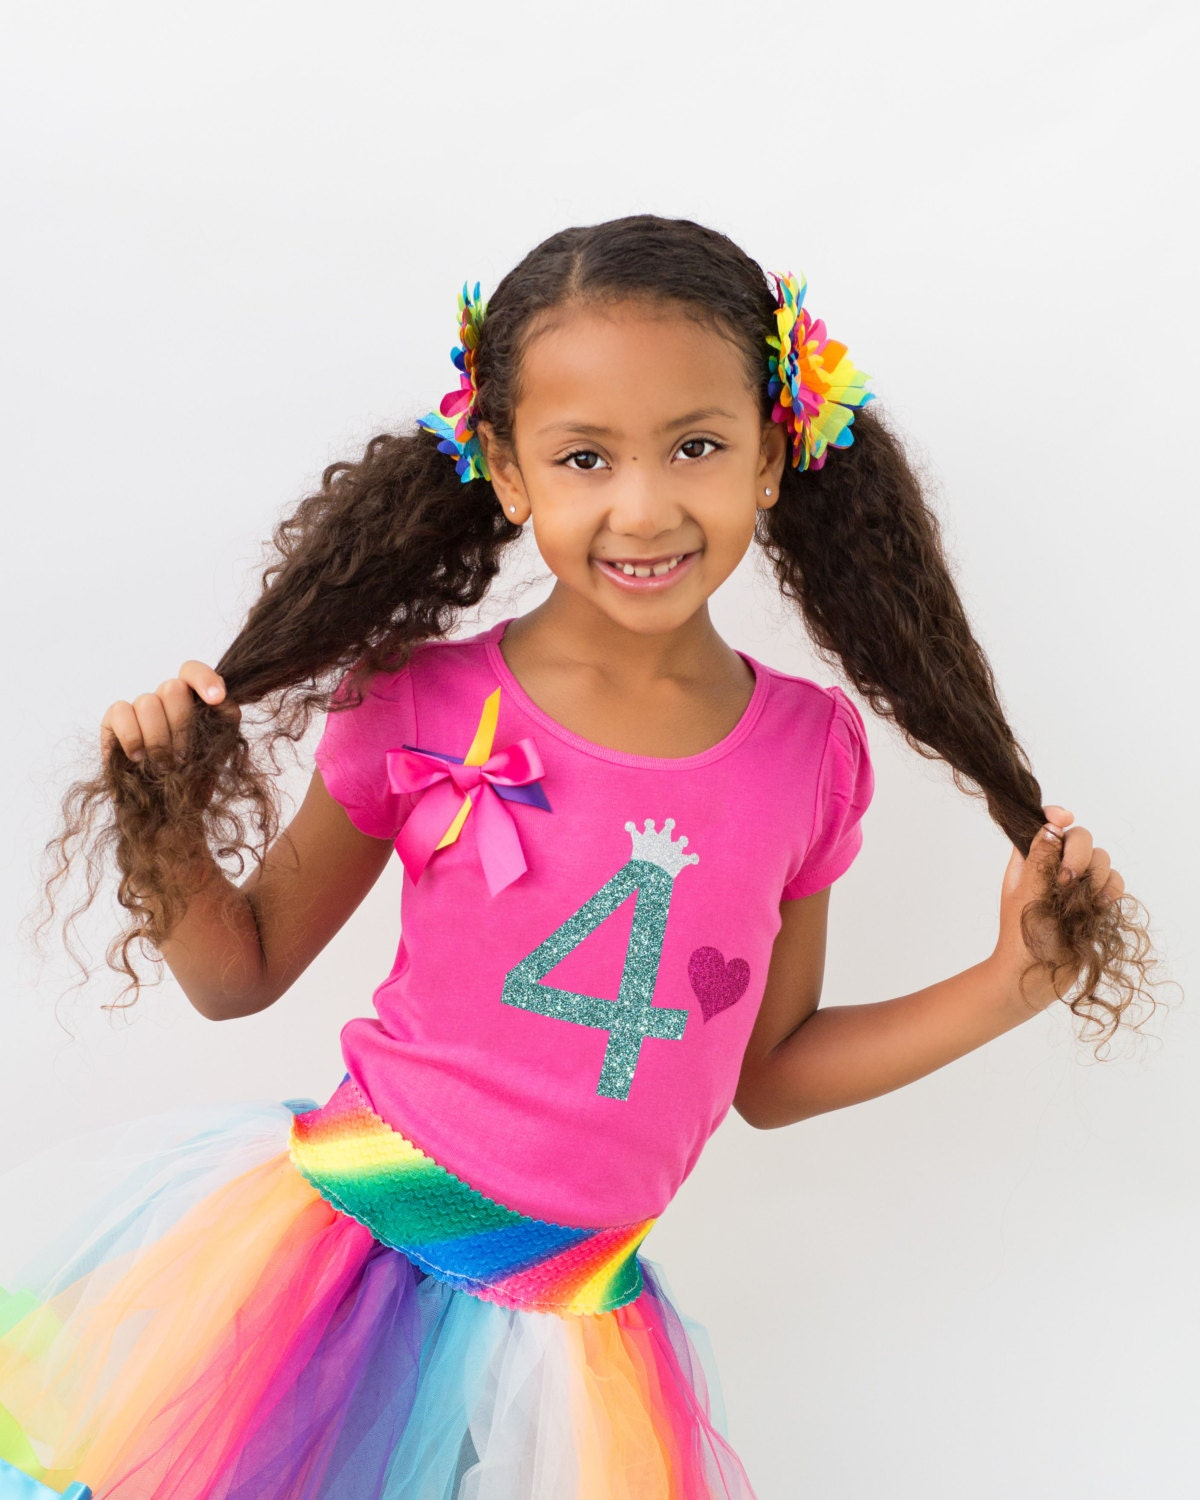 Design your own t-shirt hot pink - 4th Birthday Outfit Rainbow Tutu Birthday Hair Bow Girls Birthday Rainbow Socks Birthday Girl Outfit Personalized Shirt Glitter Sparkles 4